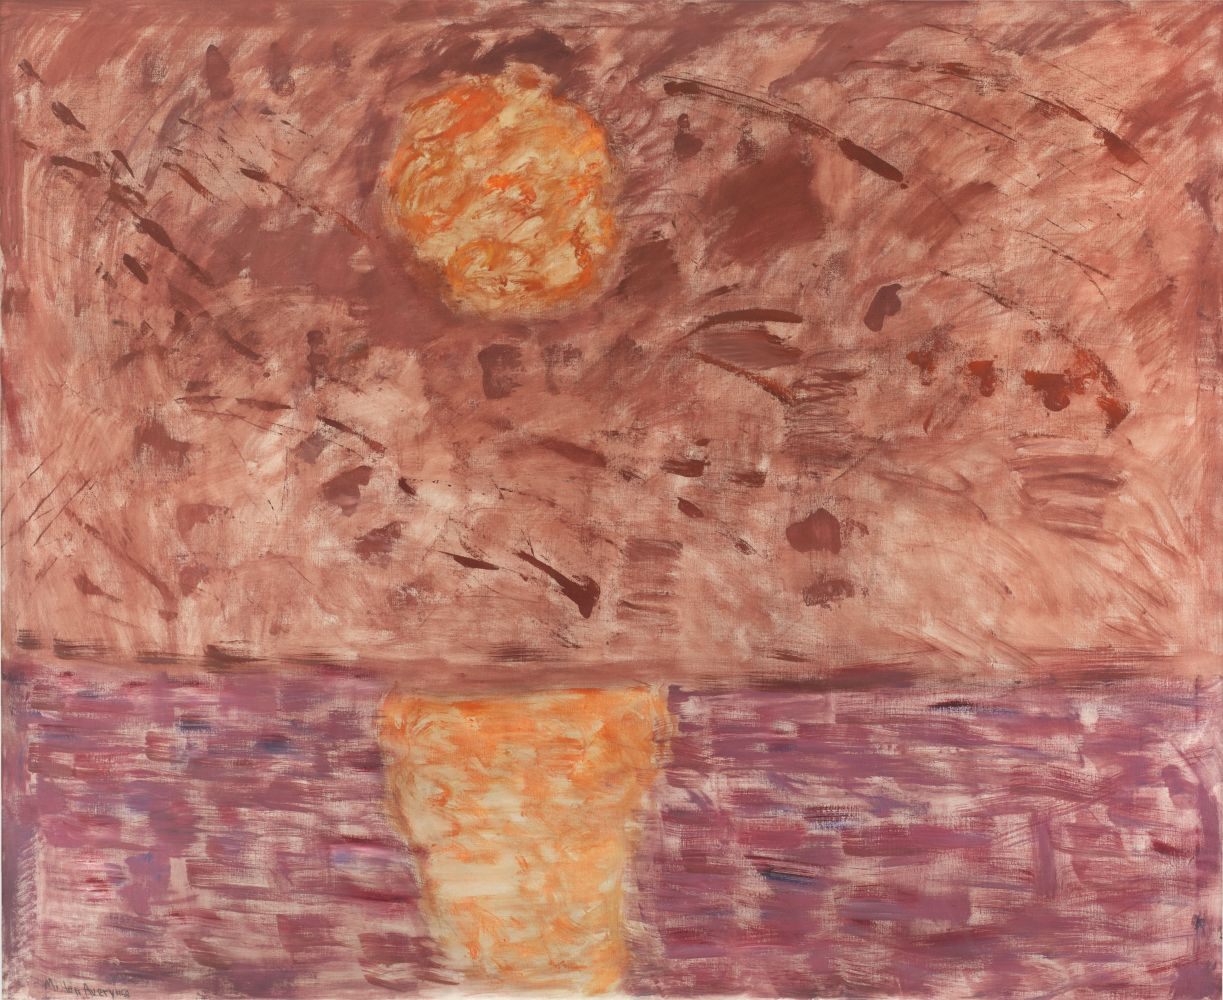 Milton Avery Hot Moon 1958 oil on canvas 56 x 66 inches (142.2 x 167.6 cm)